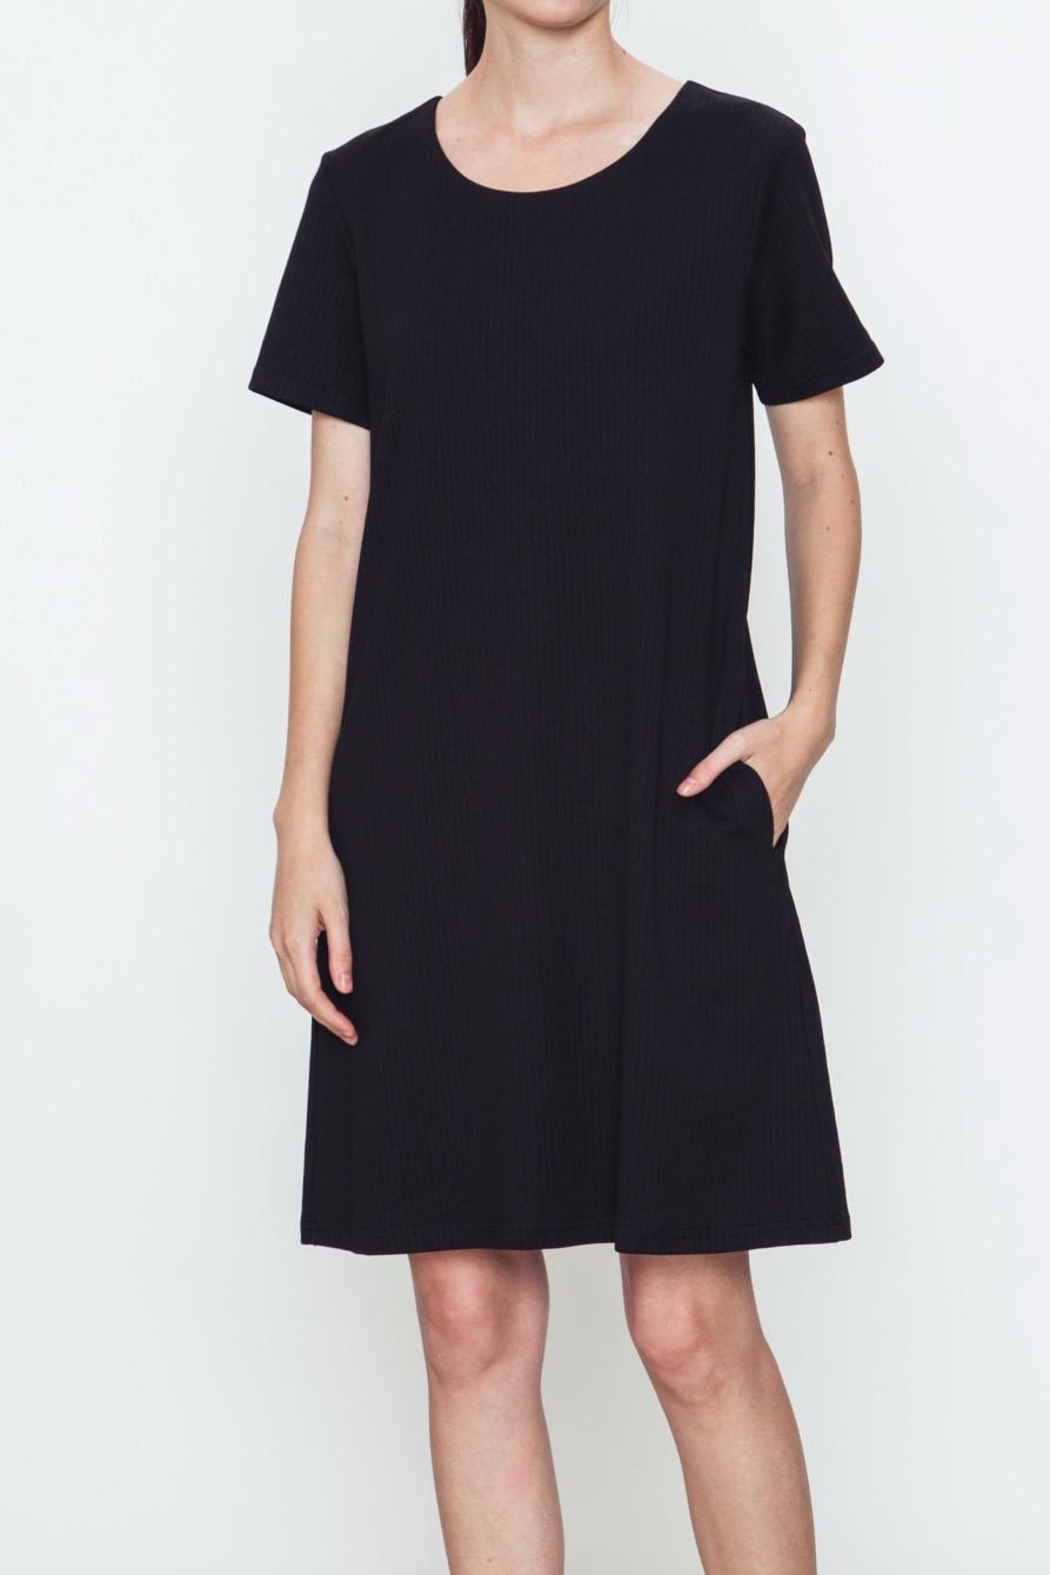 Movint Simple Black Dress - Front Cropped Image